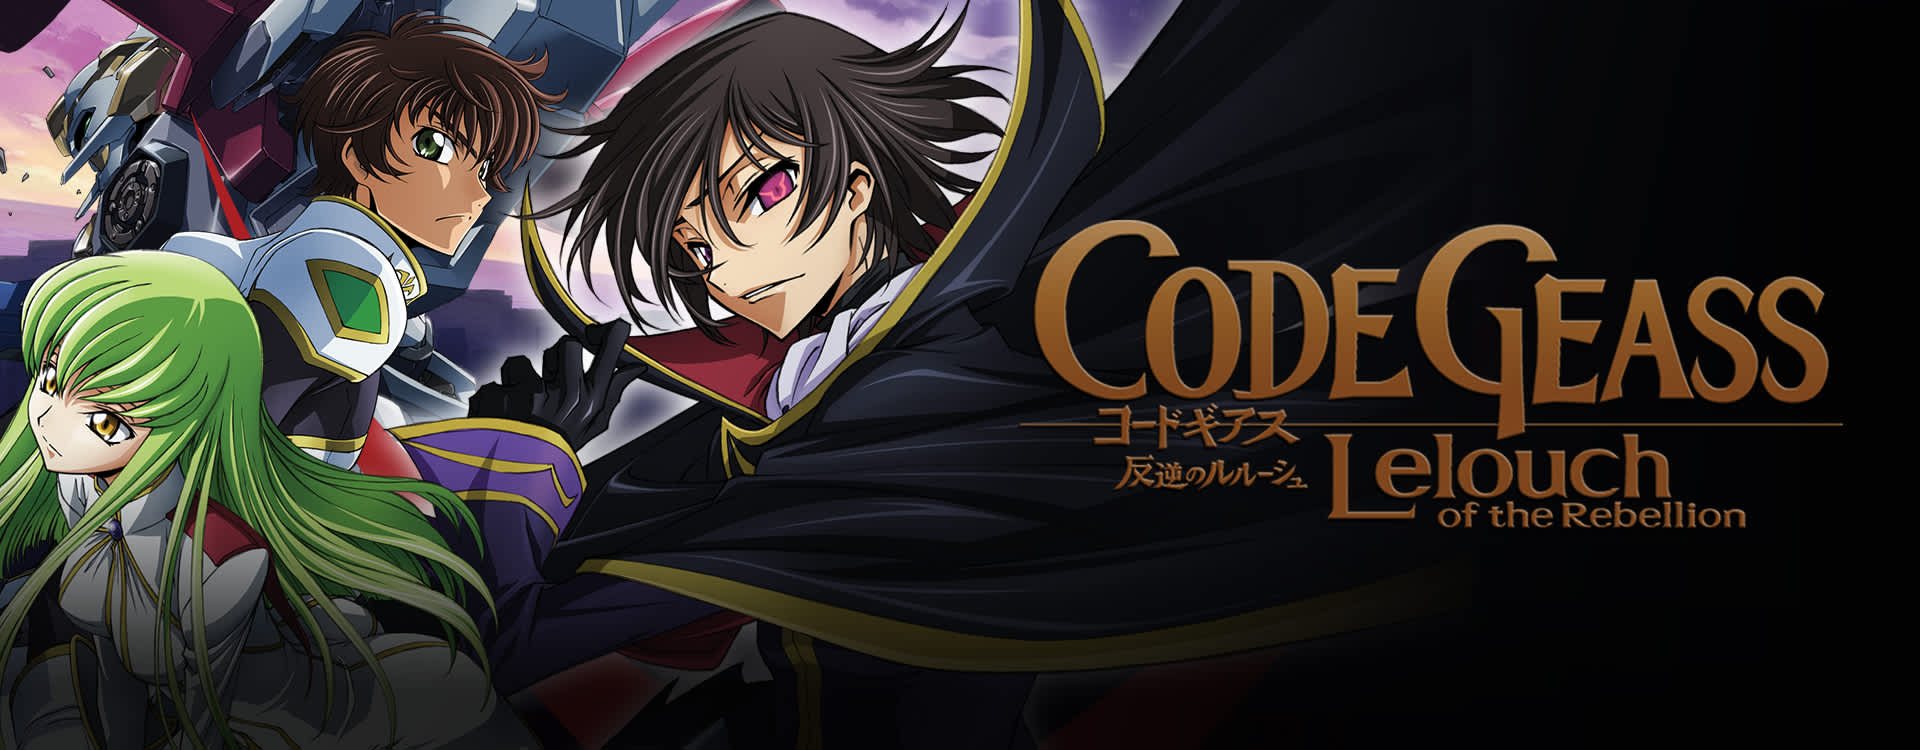 TelevisionTalks: Code Geass – Lelouch of the Rebellion